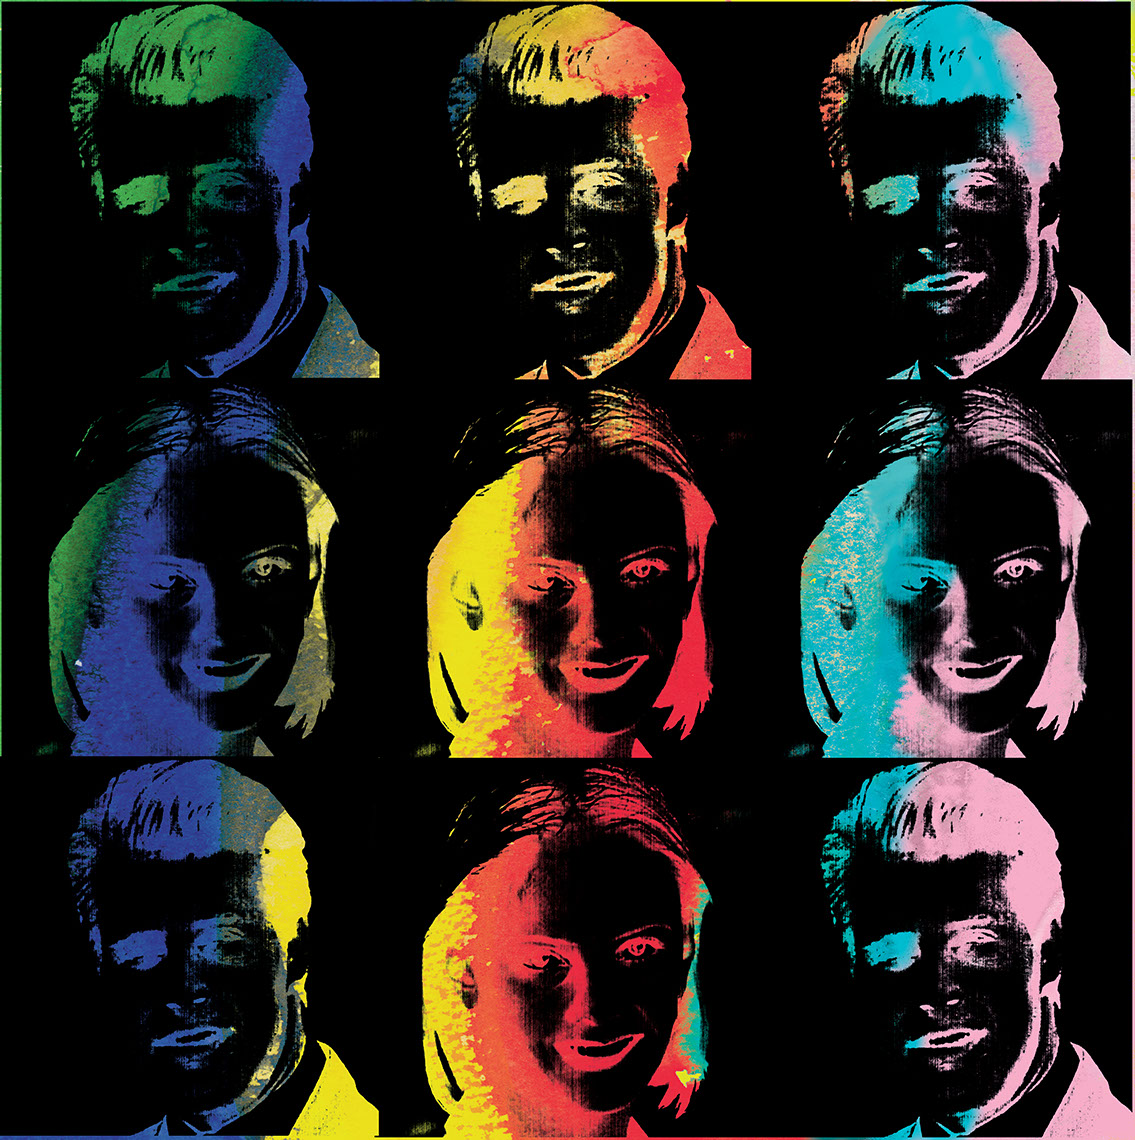 illustration-Retro_Multi-color Warhol style heads-Pastiche